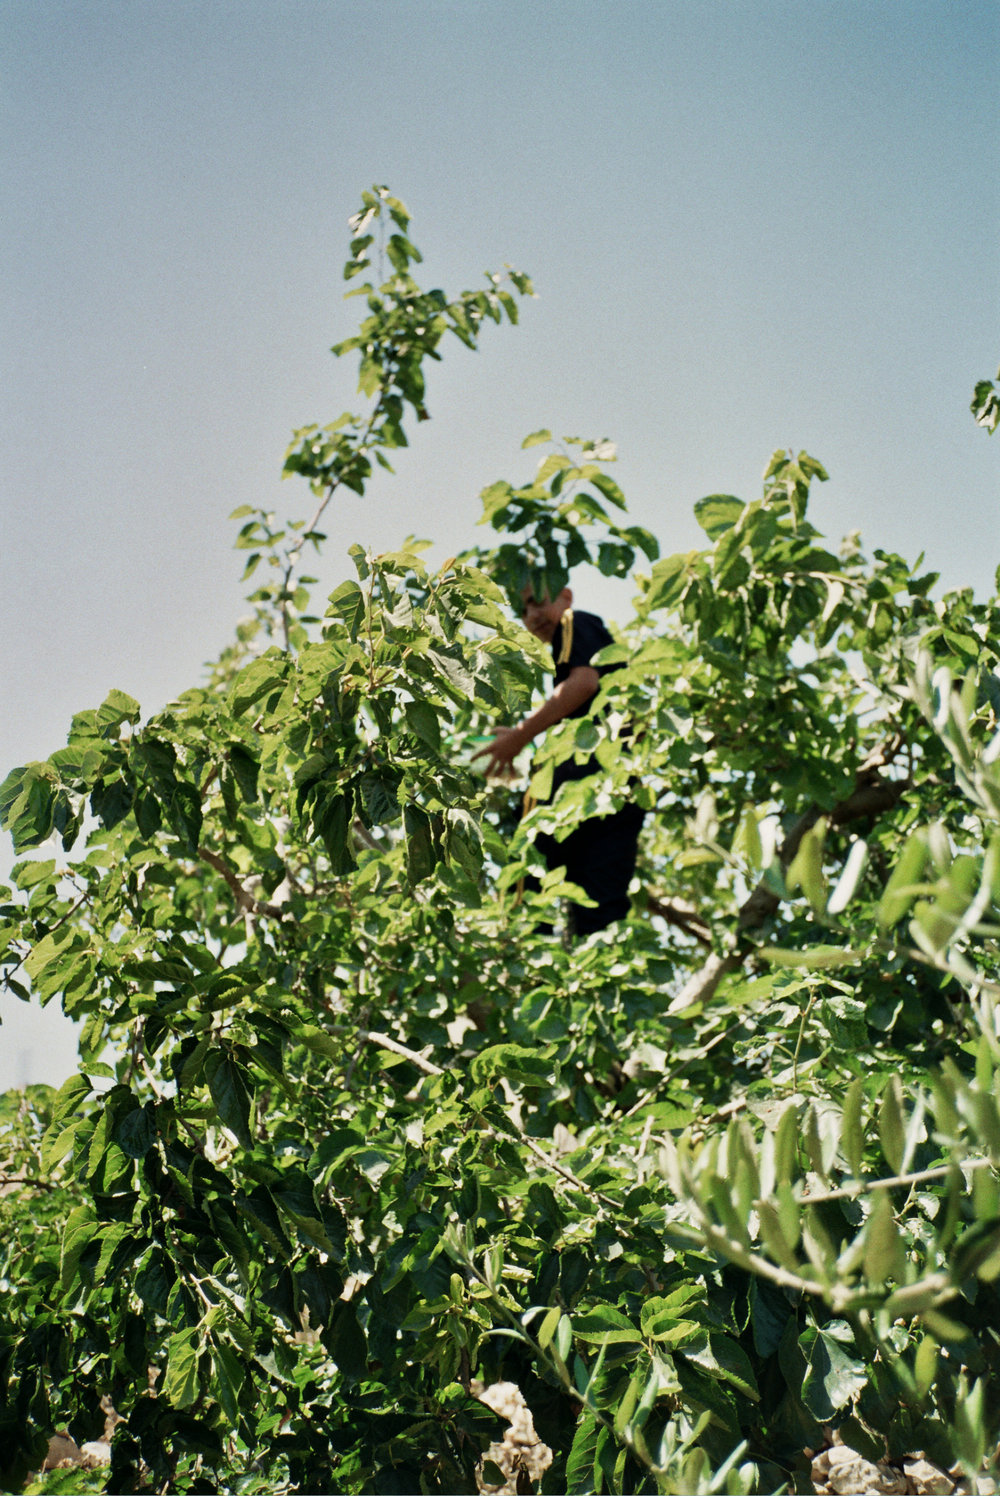 my cousin picking mulberries in our village in the occupied west bank, 2013